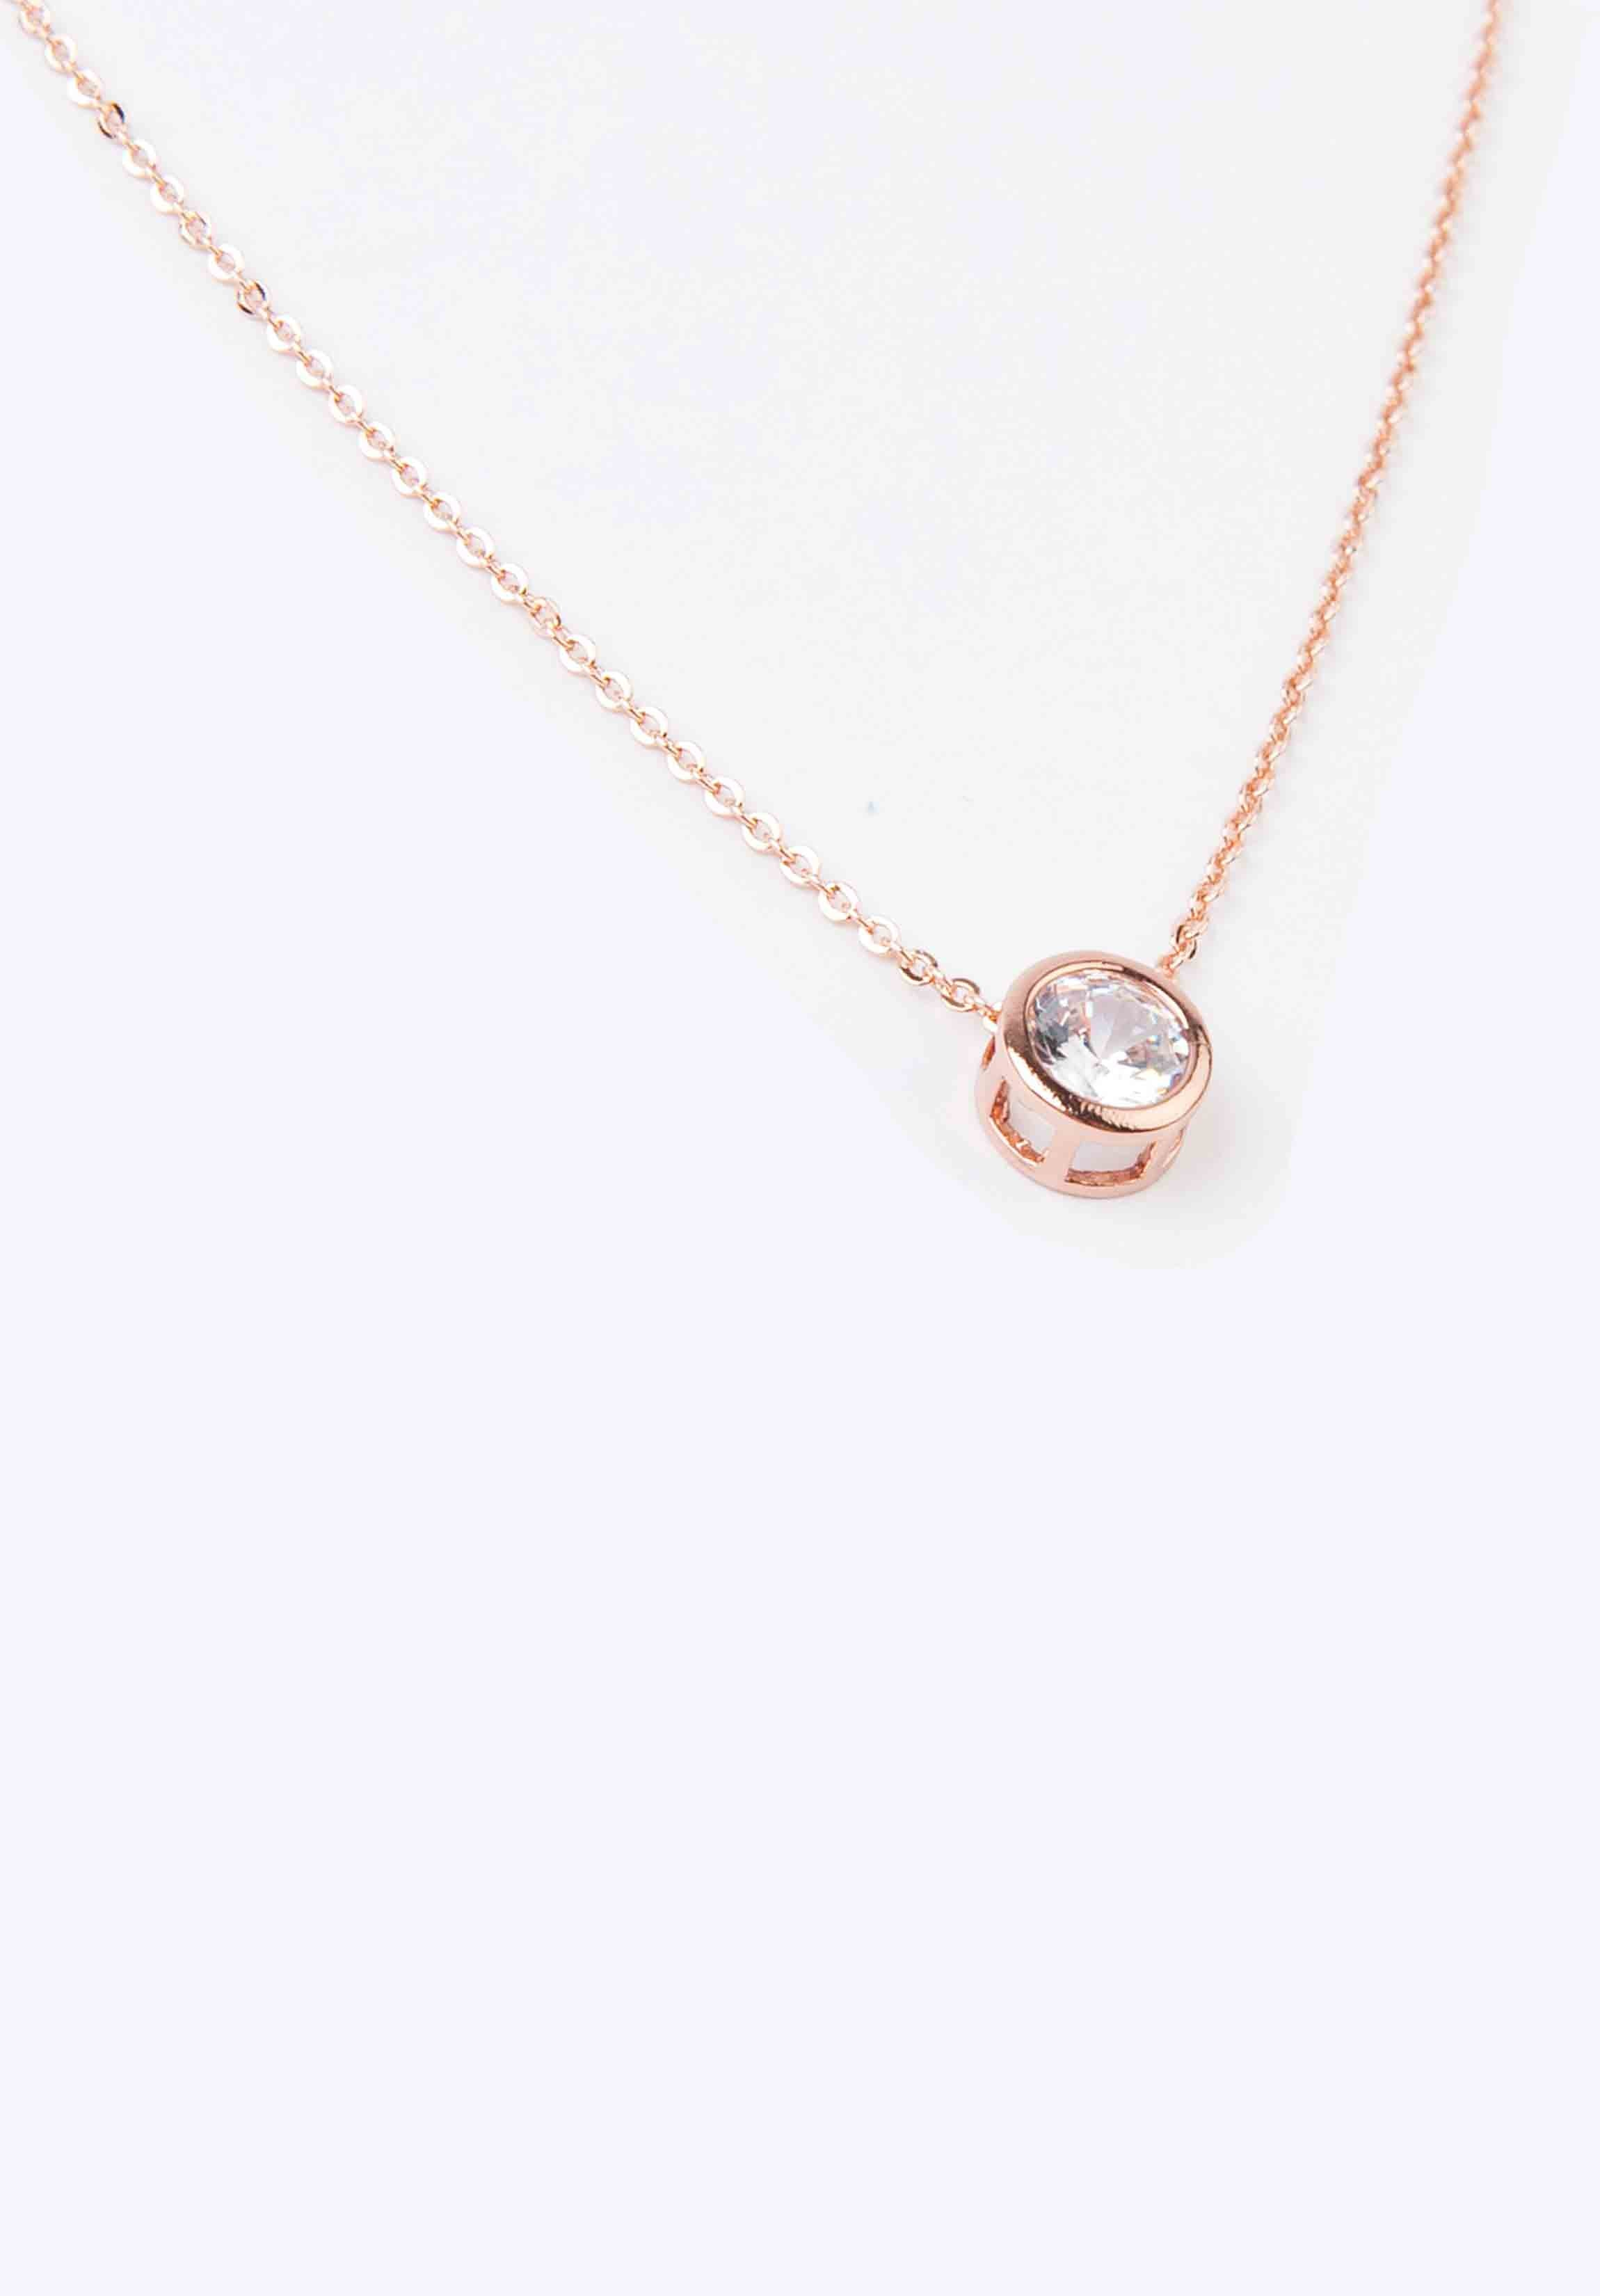 STONE NECKLACE | ROSE GOLD